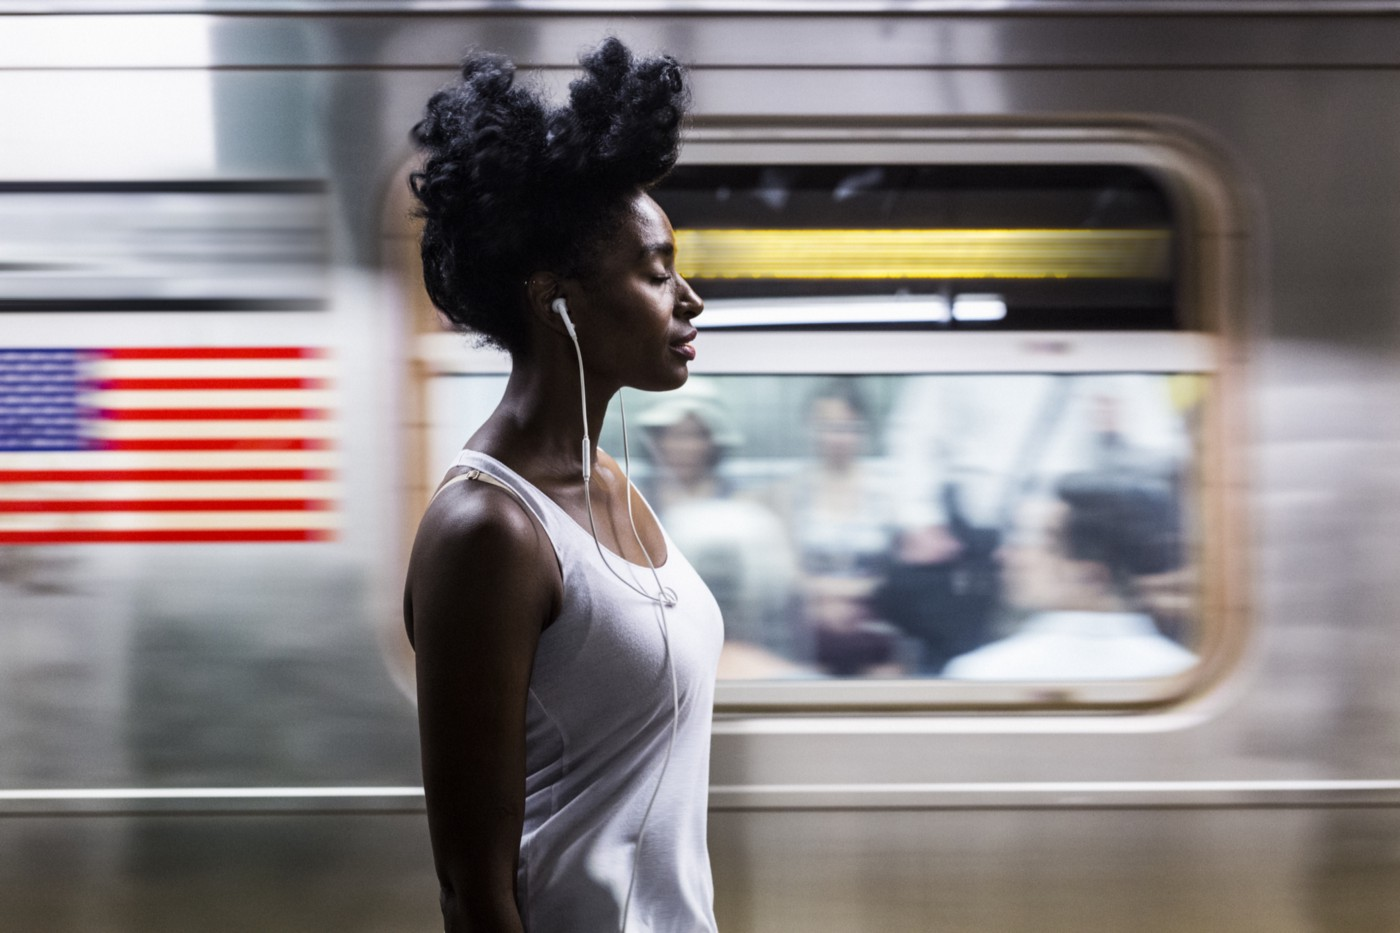 Black woman with eyes closed as subway passes by.